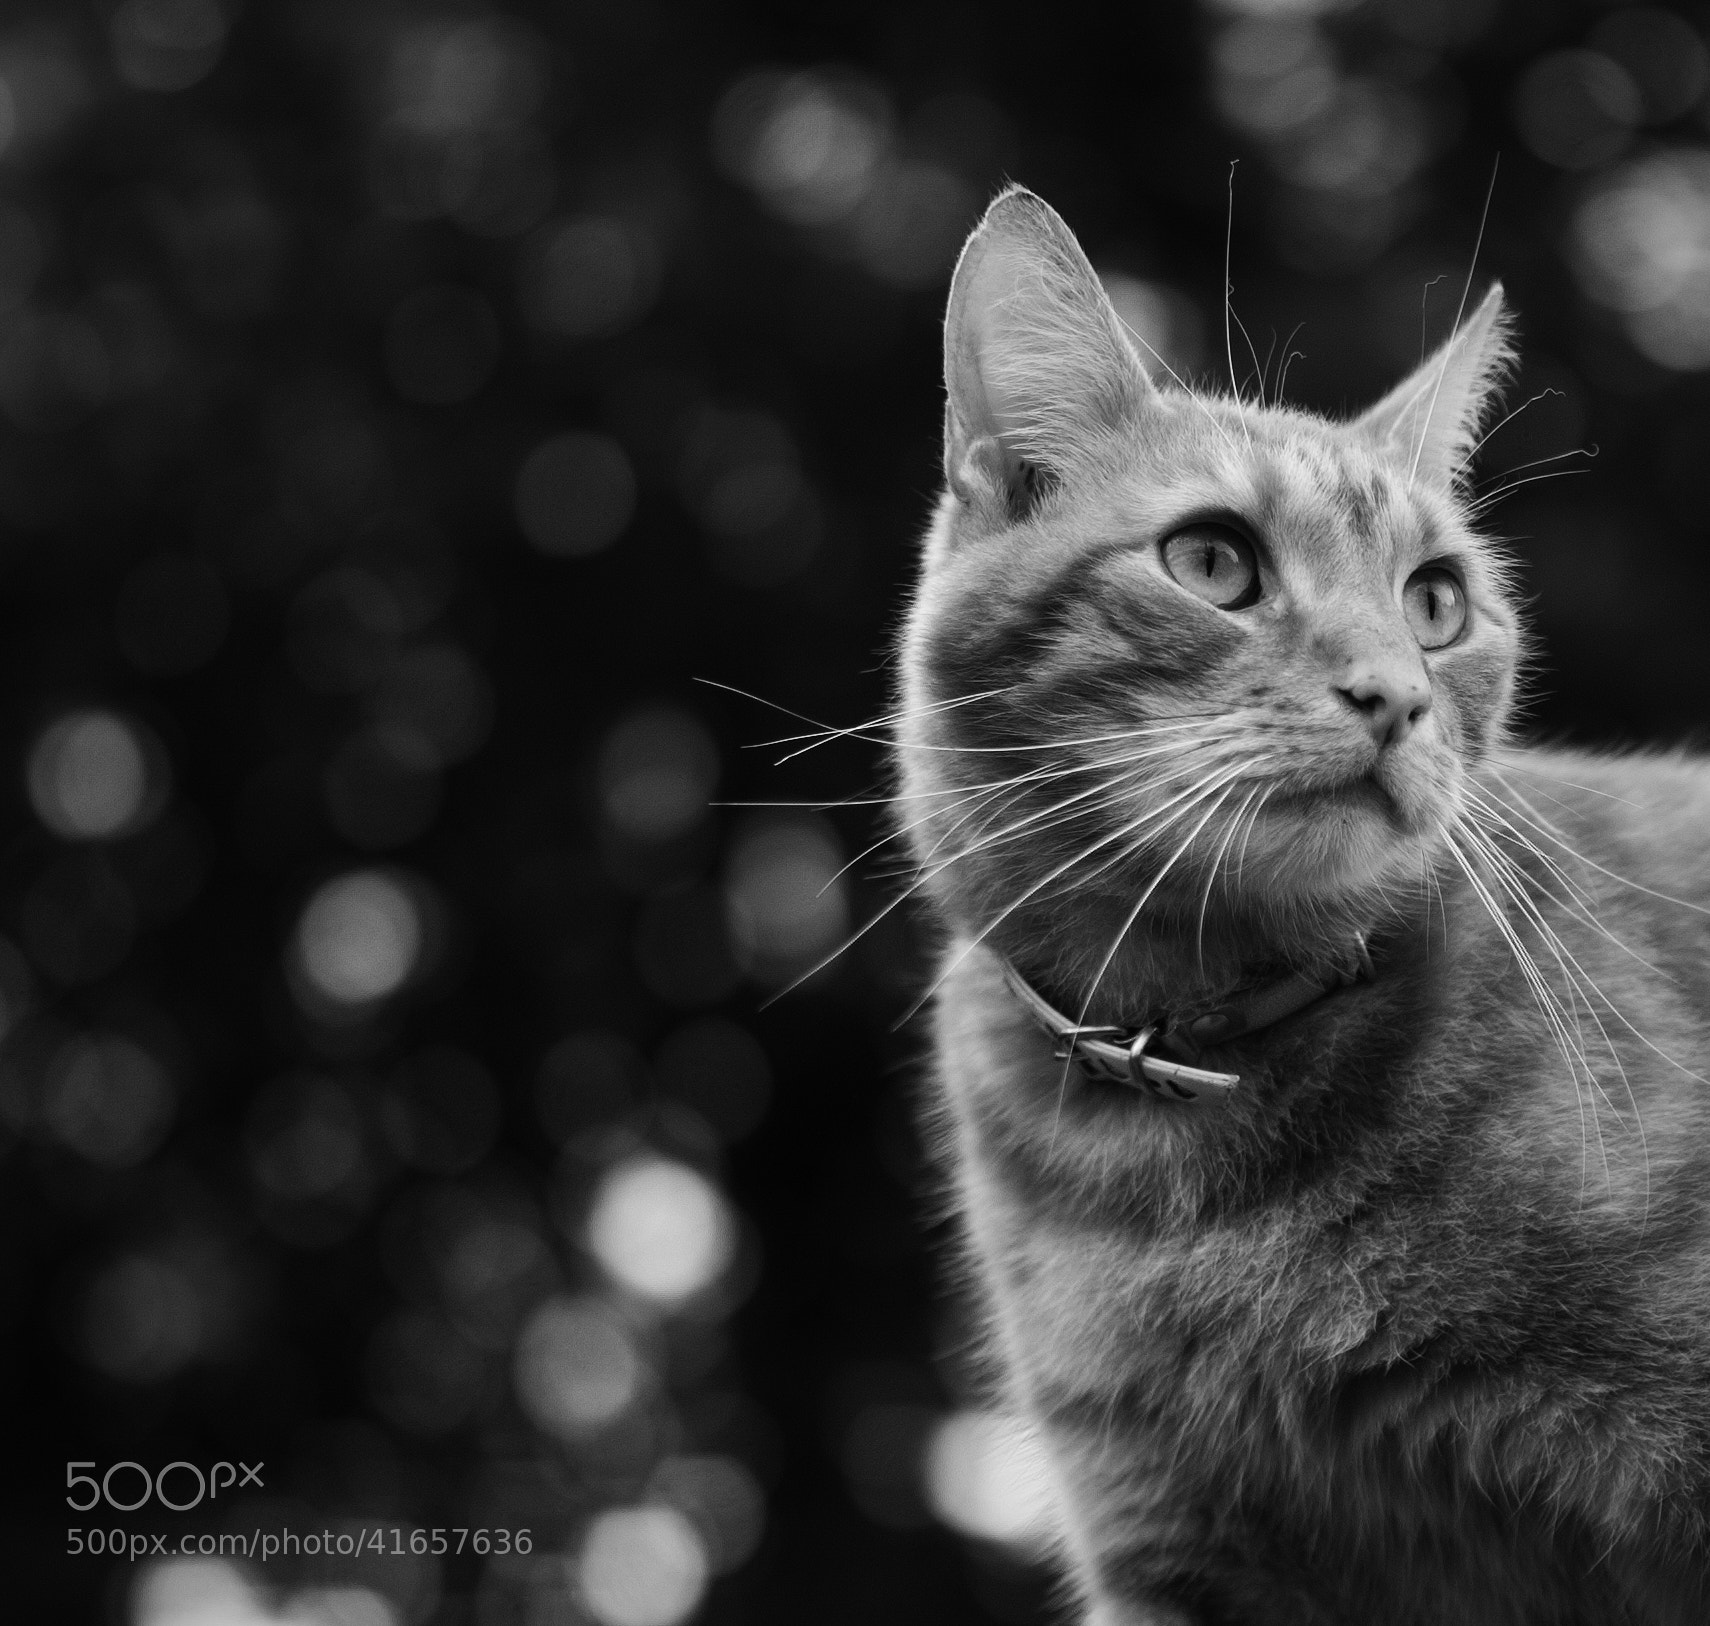 Photograph Obey the cat by Szilvia Zarda on 500px